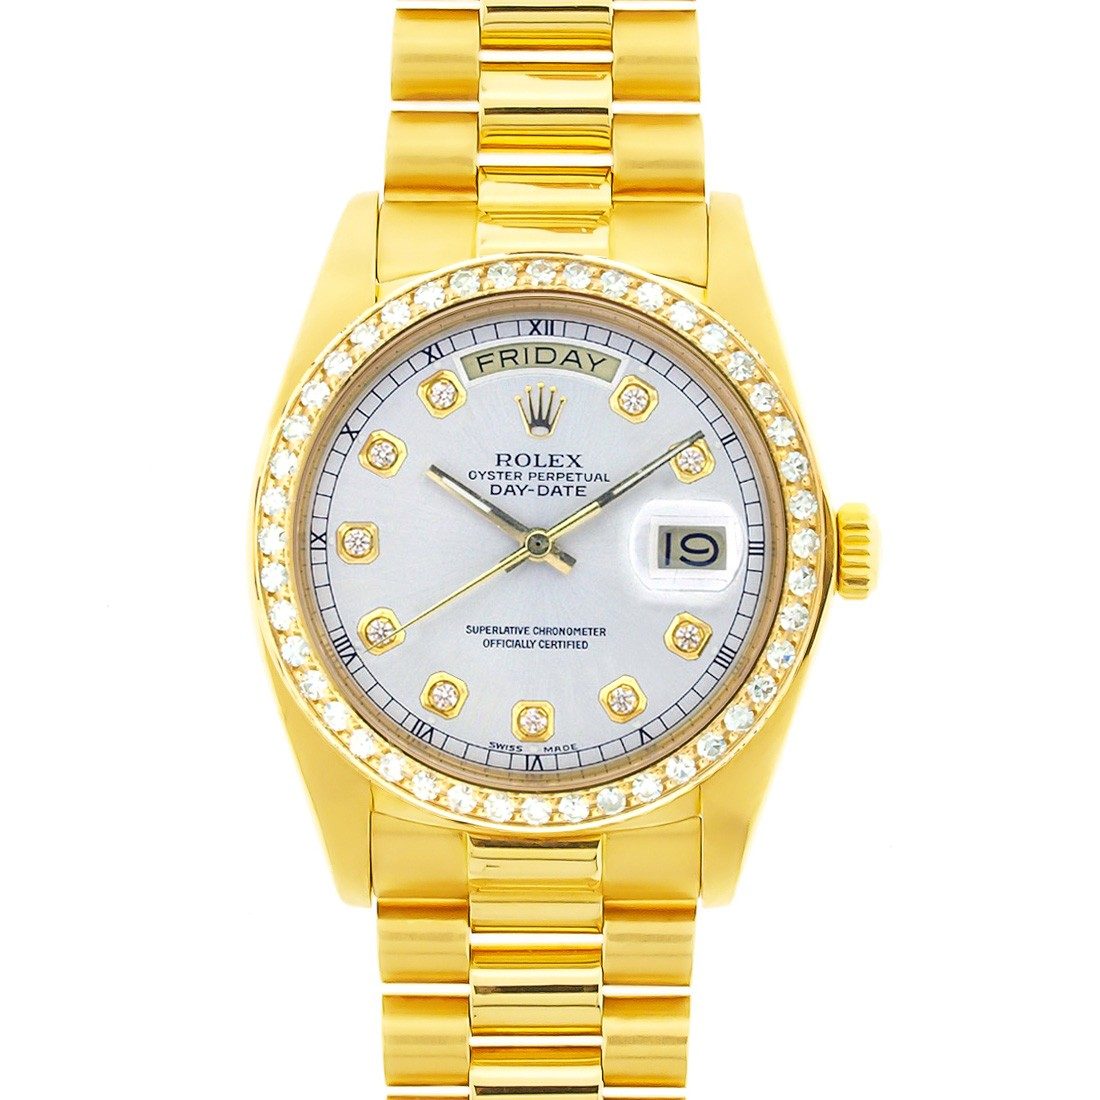 18k Yellow Gold Oyster Perpetual Rolex Day Date President